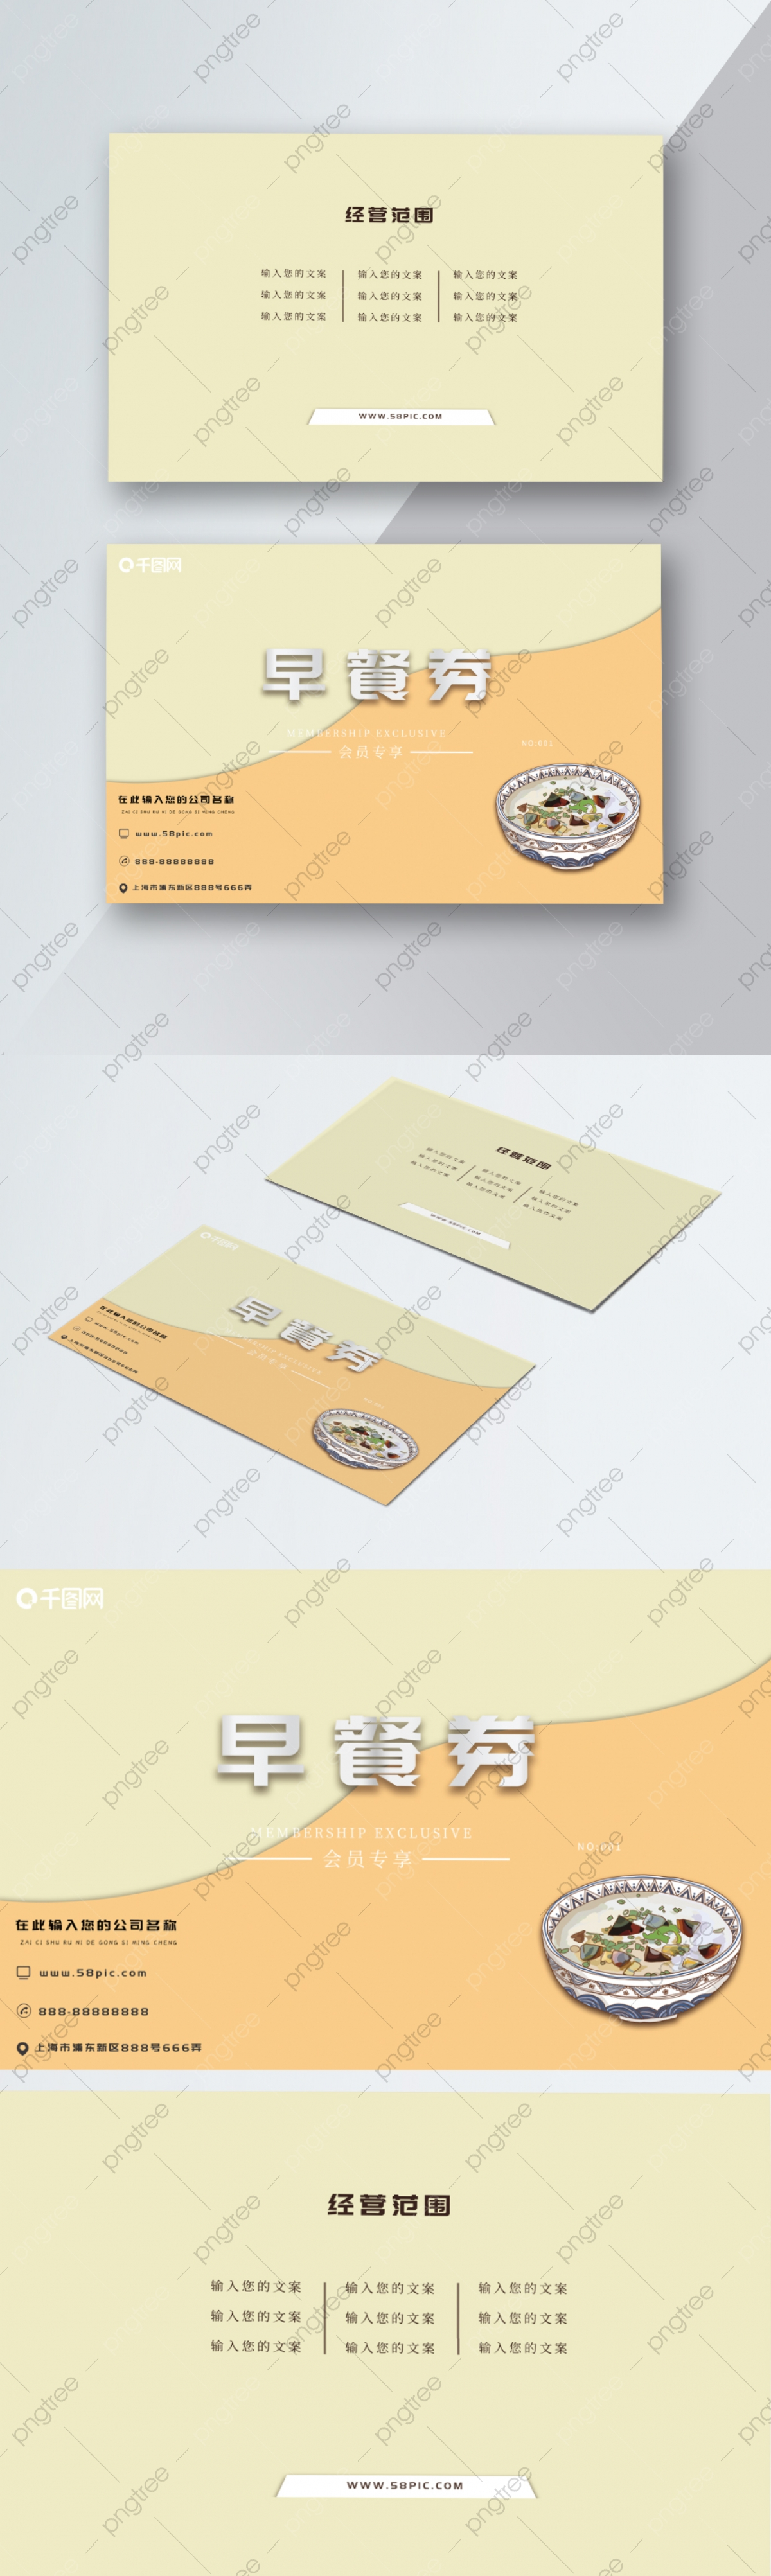 Breakfast Voucher Dinner Voucher Snack Coupon Psd White Template For Free Download On Pngtree